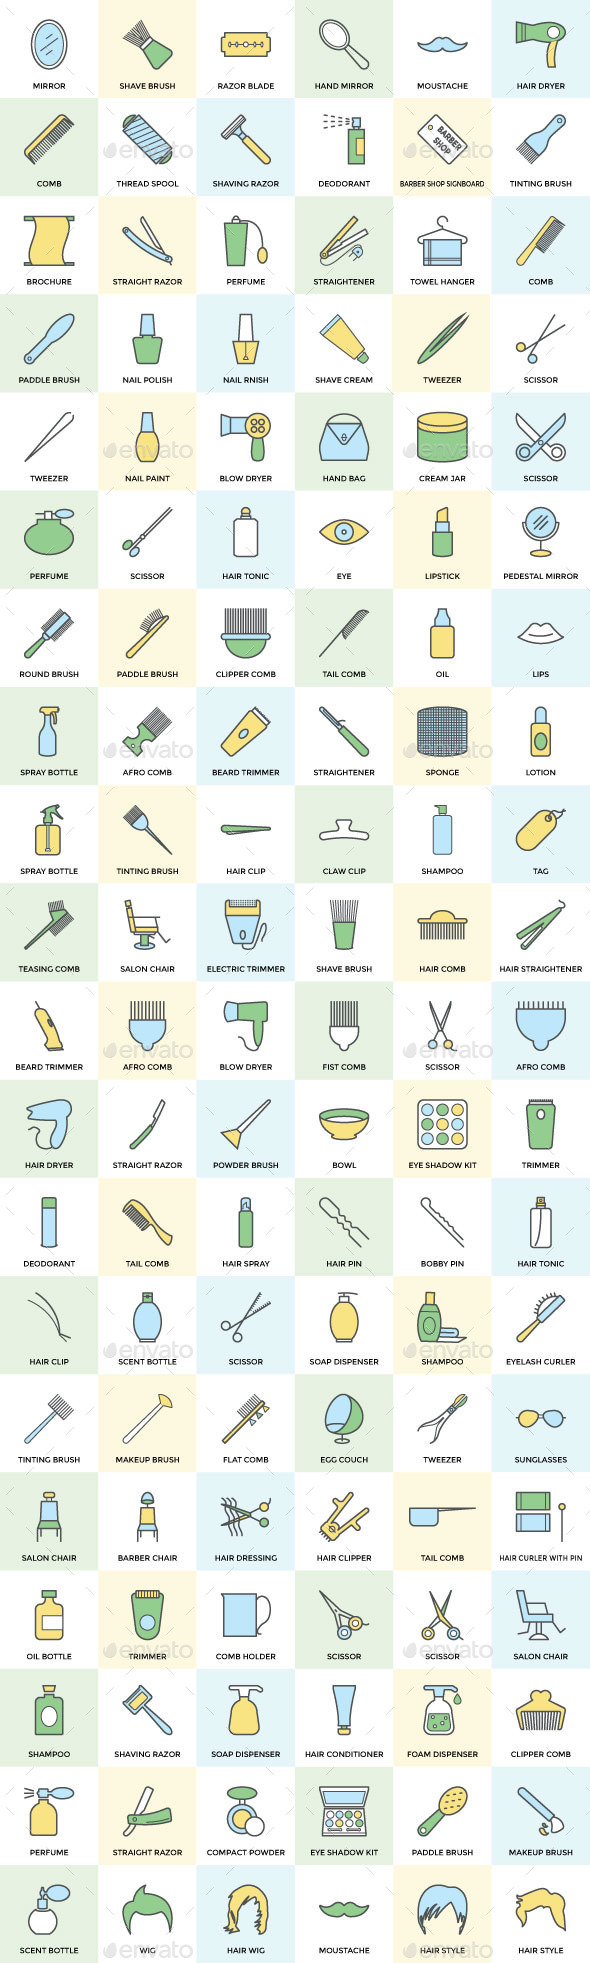 100+ Hair Salon or Barber Icons Set - Icons